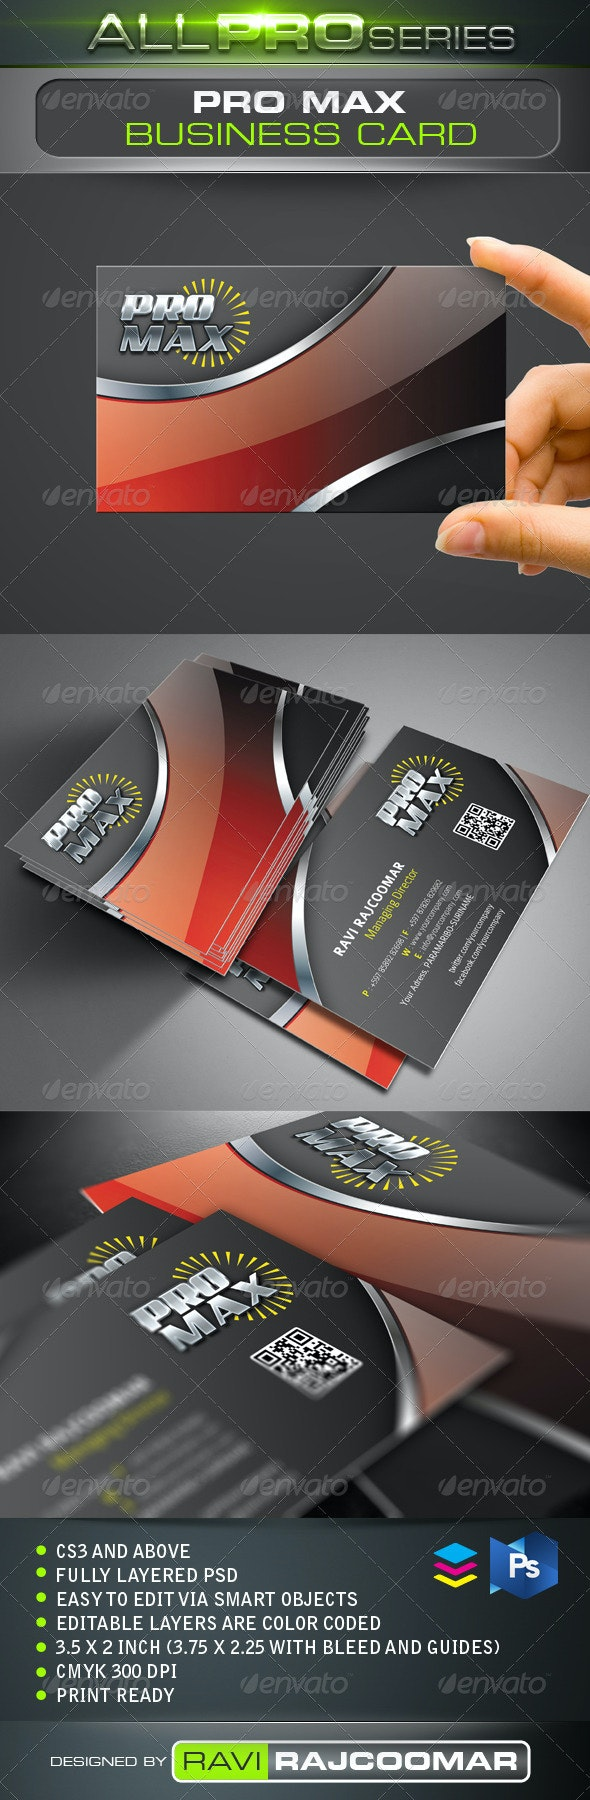 Pro Max Business Card - Business Cards Print Templates